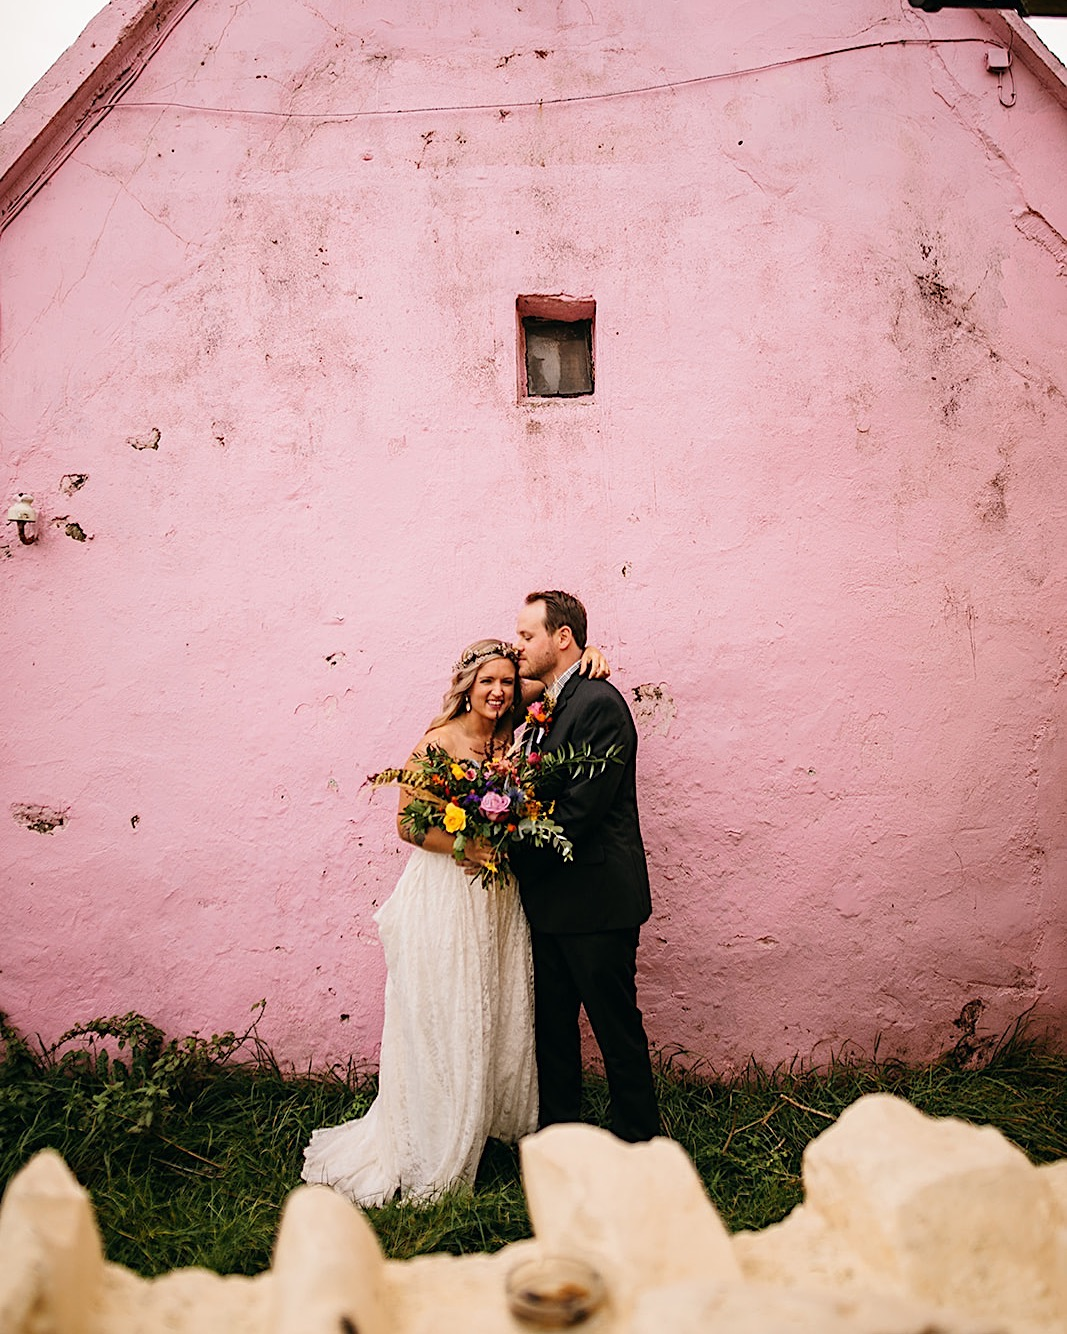 Bride and groom embrace and smile in front of a bubblegum pink wall.